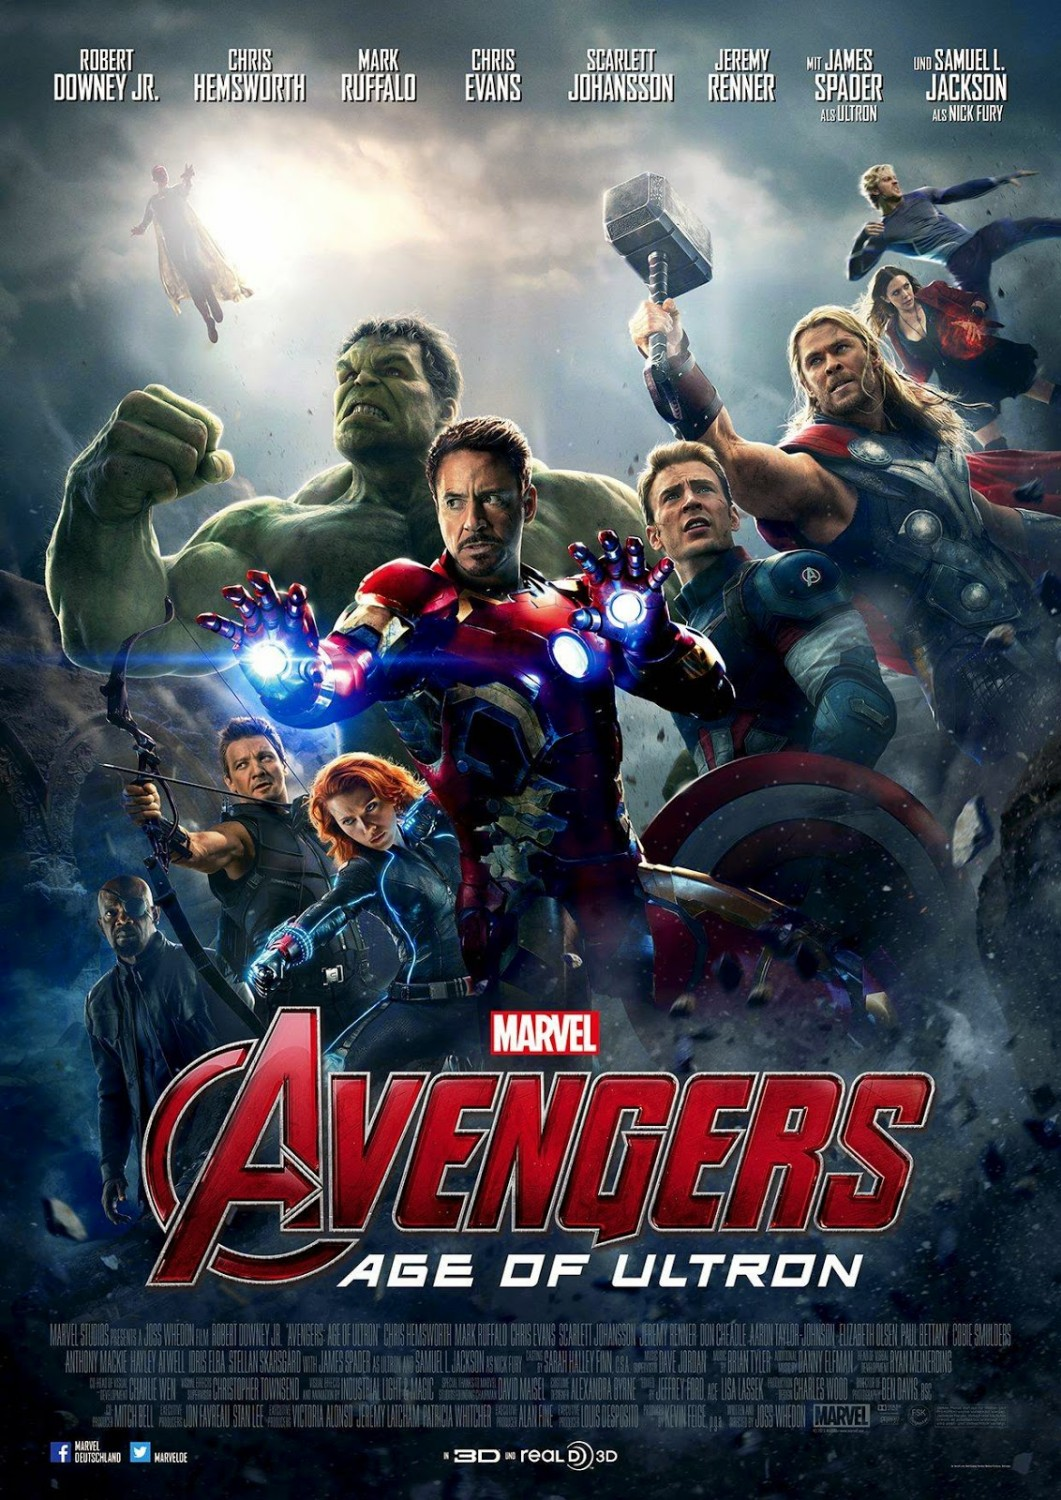 Avengers: Age of Ultron poster featuring Hulk, Iron Man, Hawkeye, Black Widwo, Captian America, Nick Fury, Thor, Scarlet Witch, Quicksilver, and the Vision.